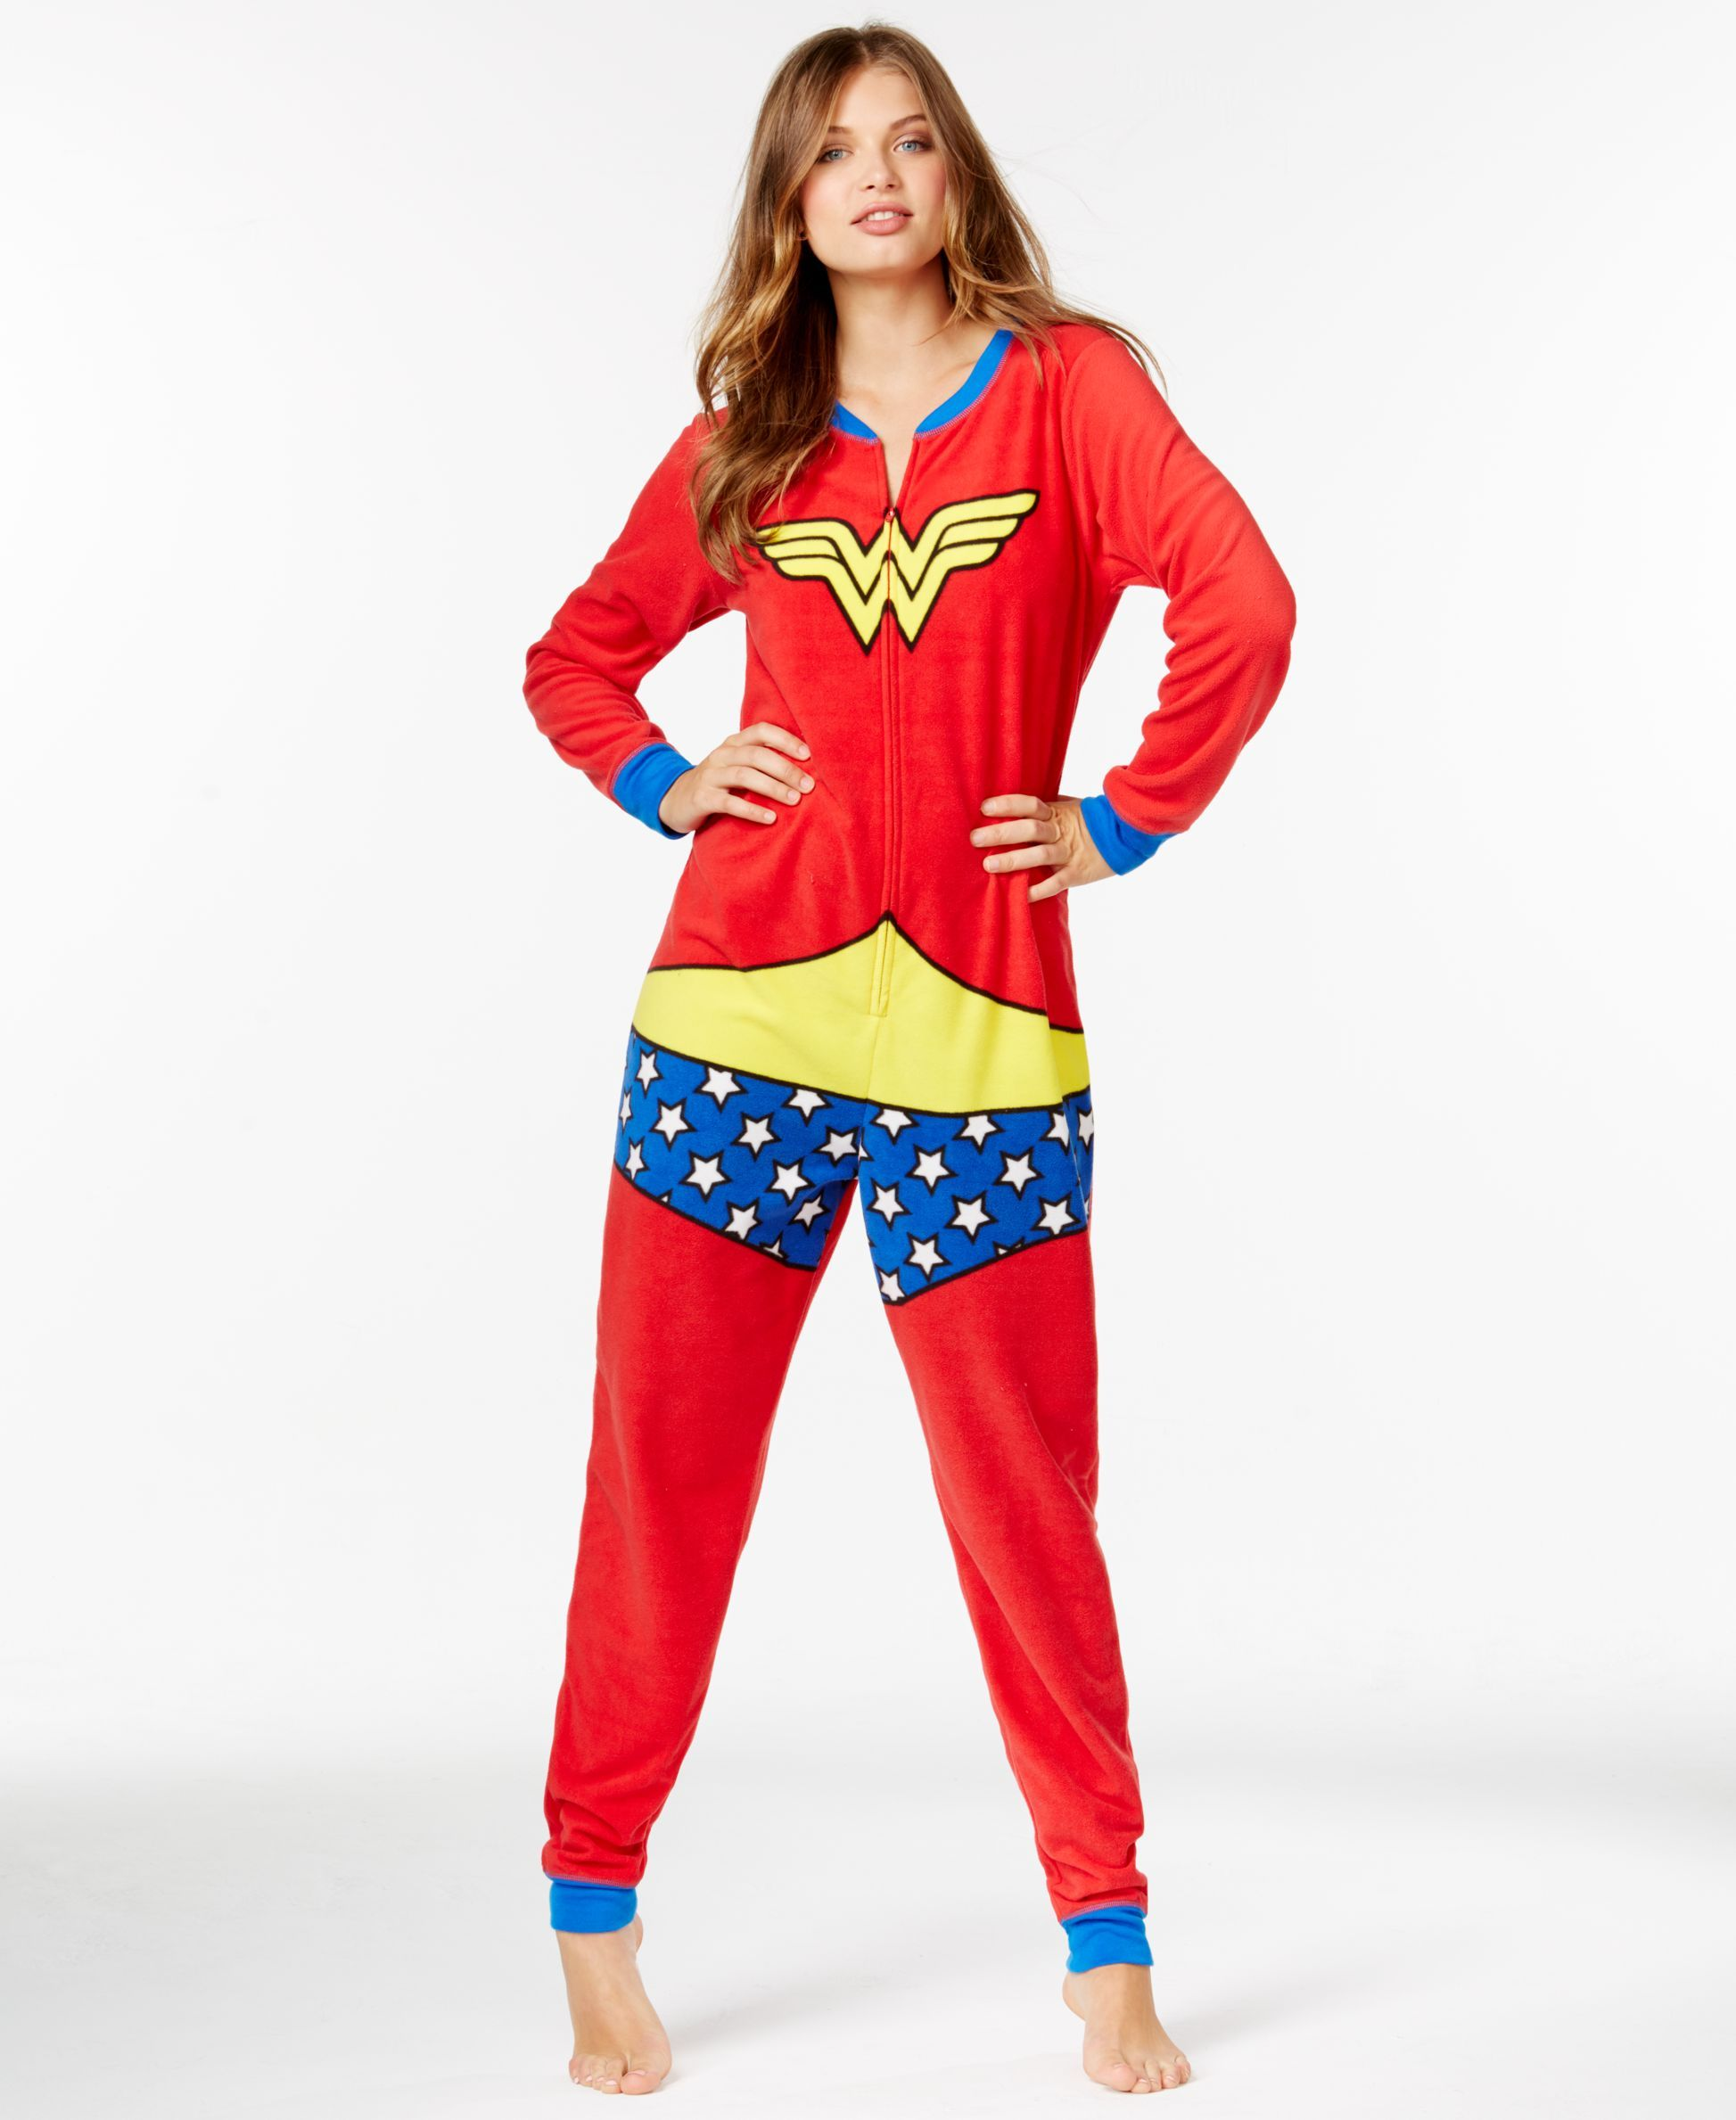 a83658fec574 Wonder Woman Adult Onesie